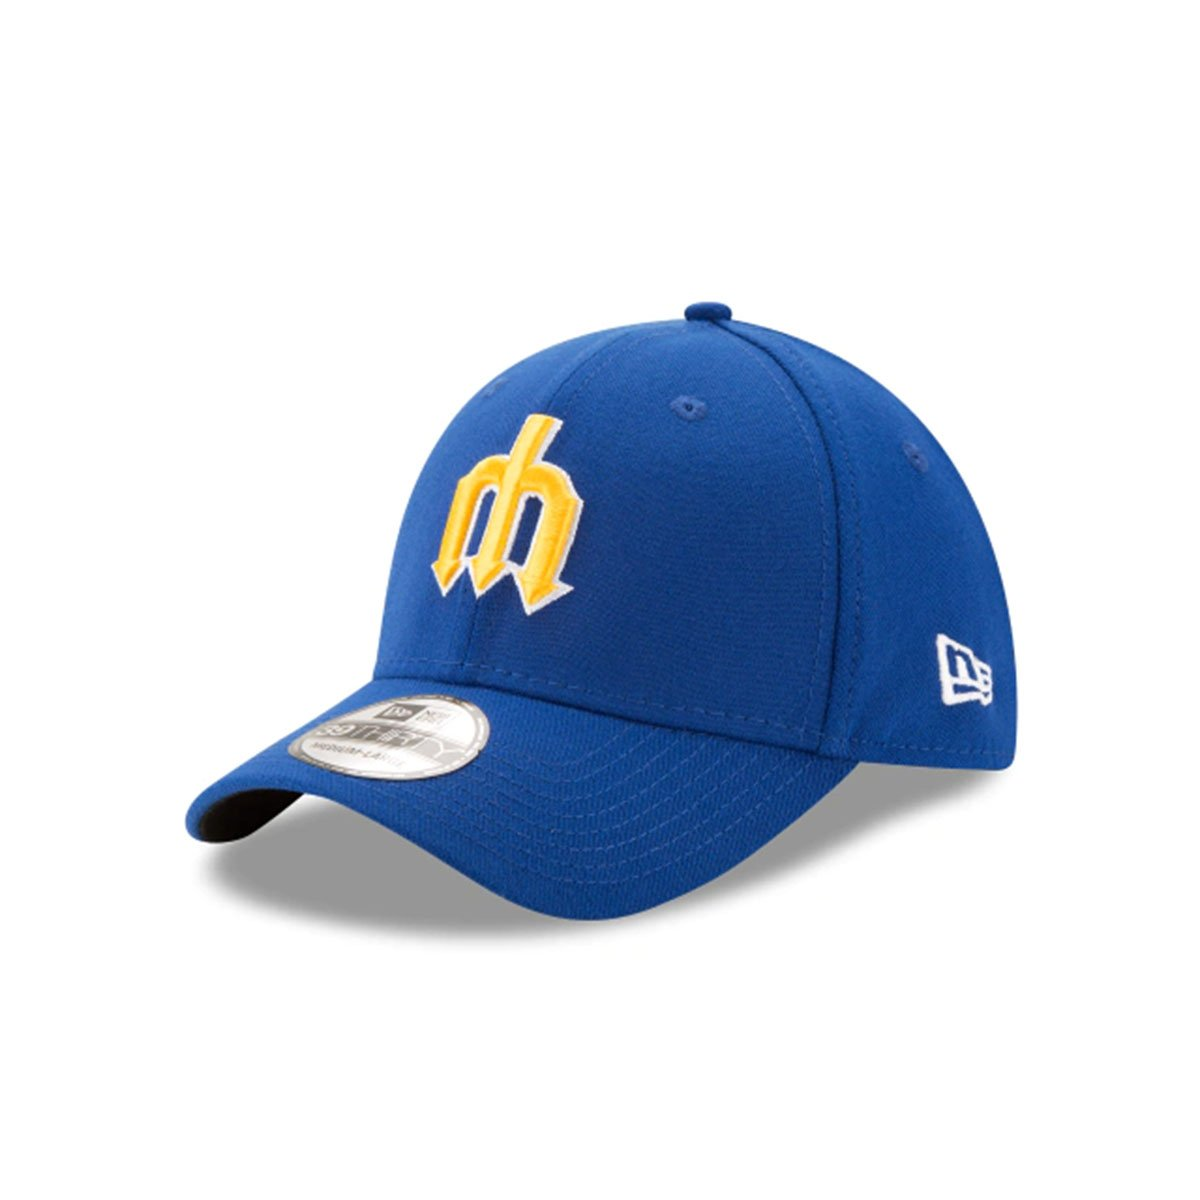 SEATTLE MARINERS_BLUE/YELLOW